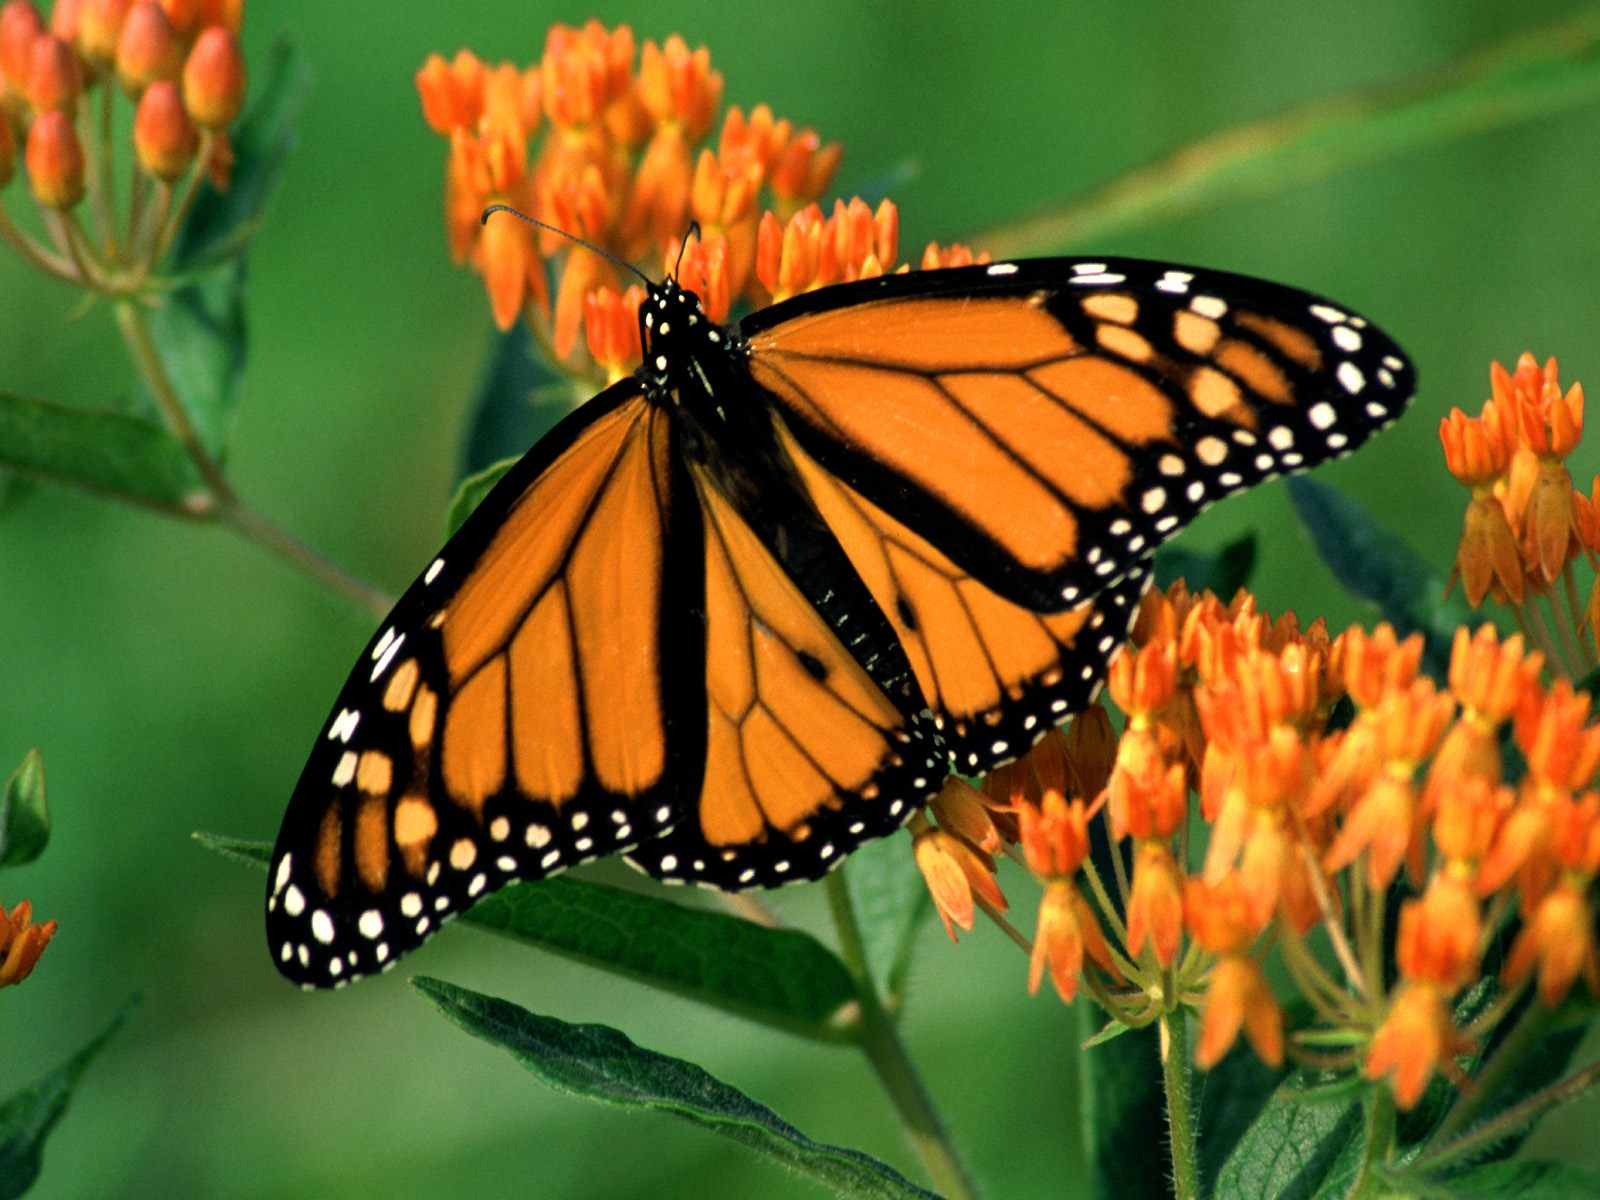 Monarch butterfly wallpaper | Amazing Wallpapers - photo#4